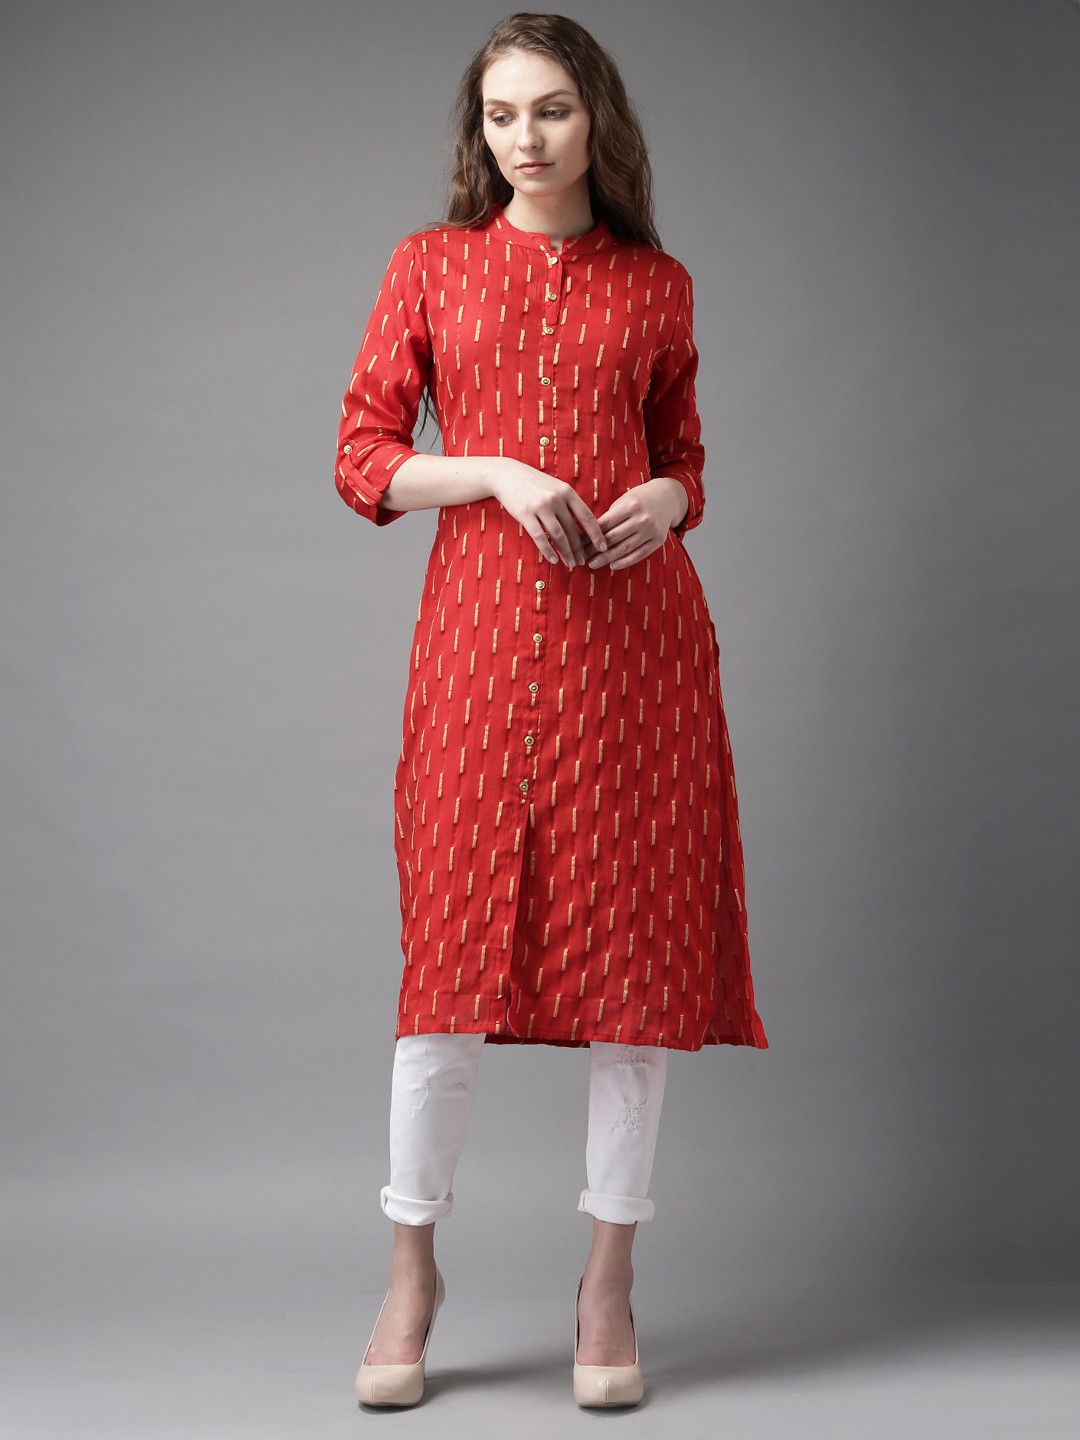 dacb47d05c Red & Gold-Toned Cotton Patterned A-Line Kurta #Kurta #Red #Golden #Cotton  #Printed